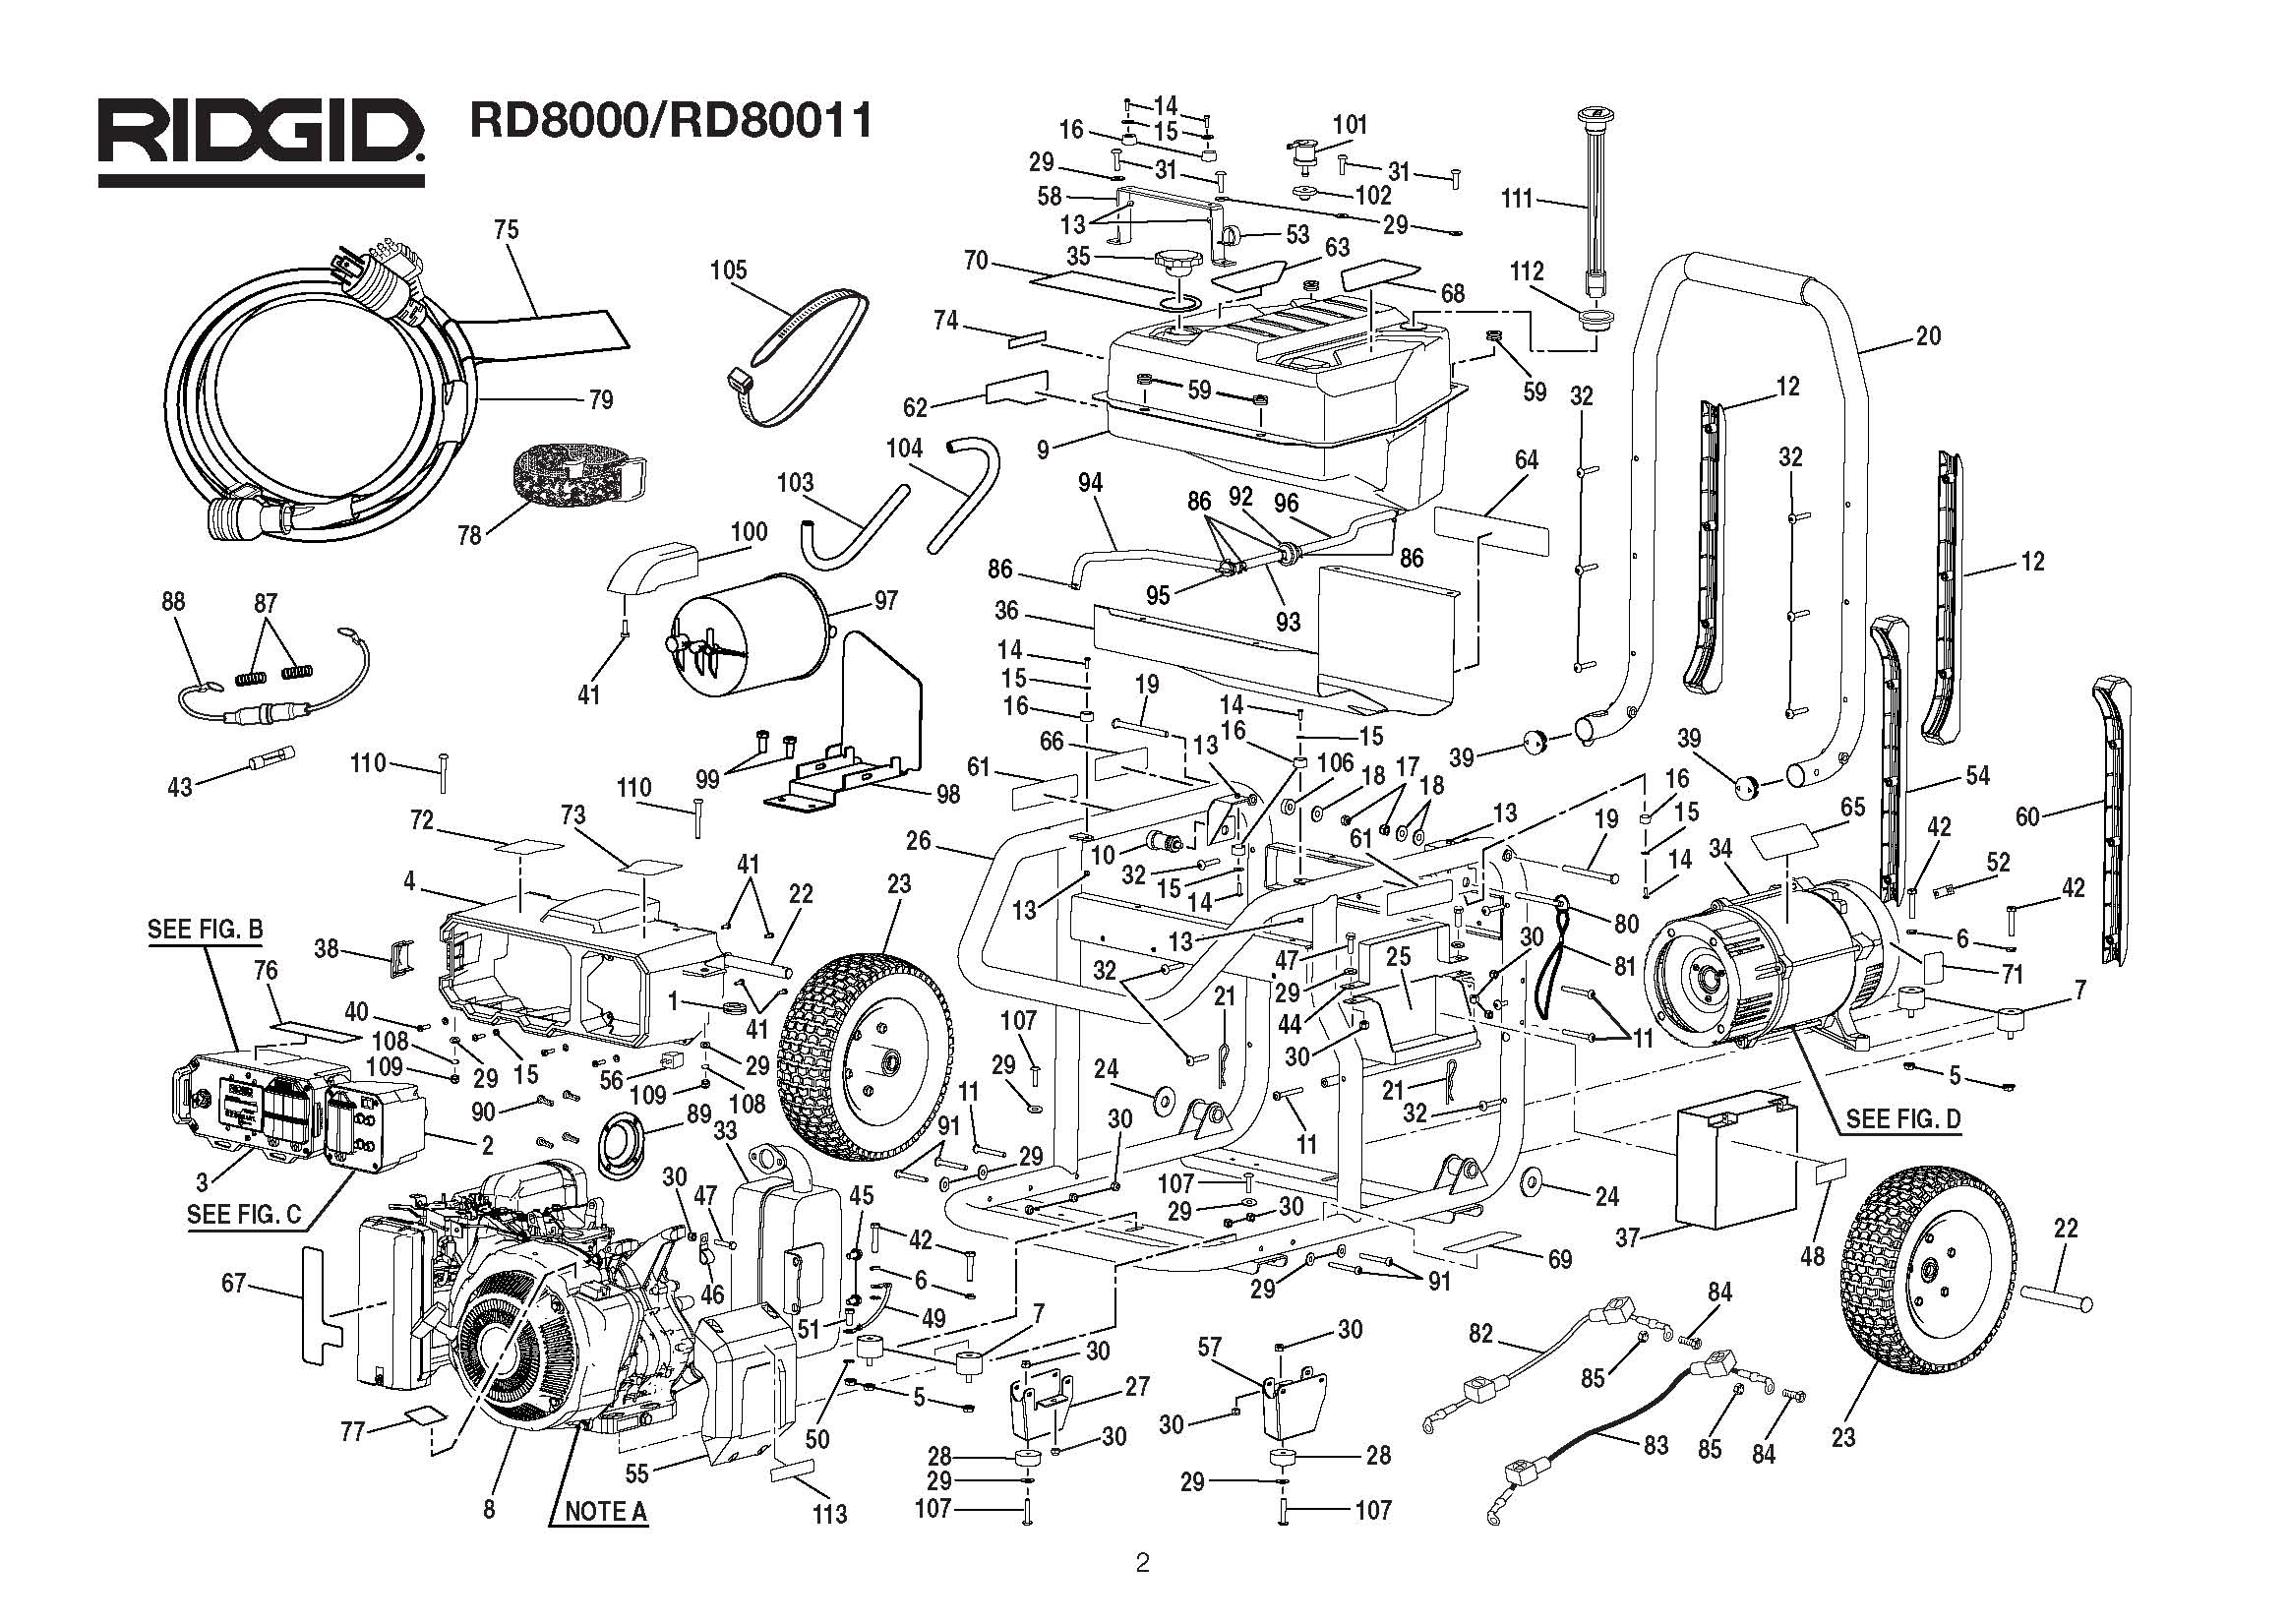 kohler kt17 engine diagram kohler k181 engine parts